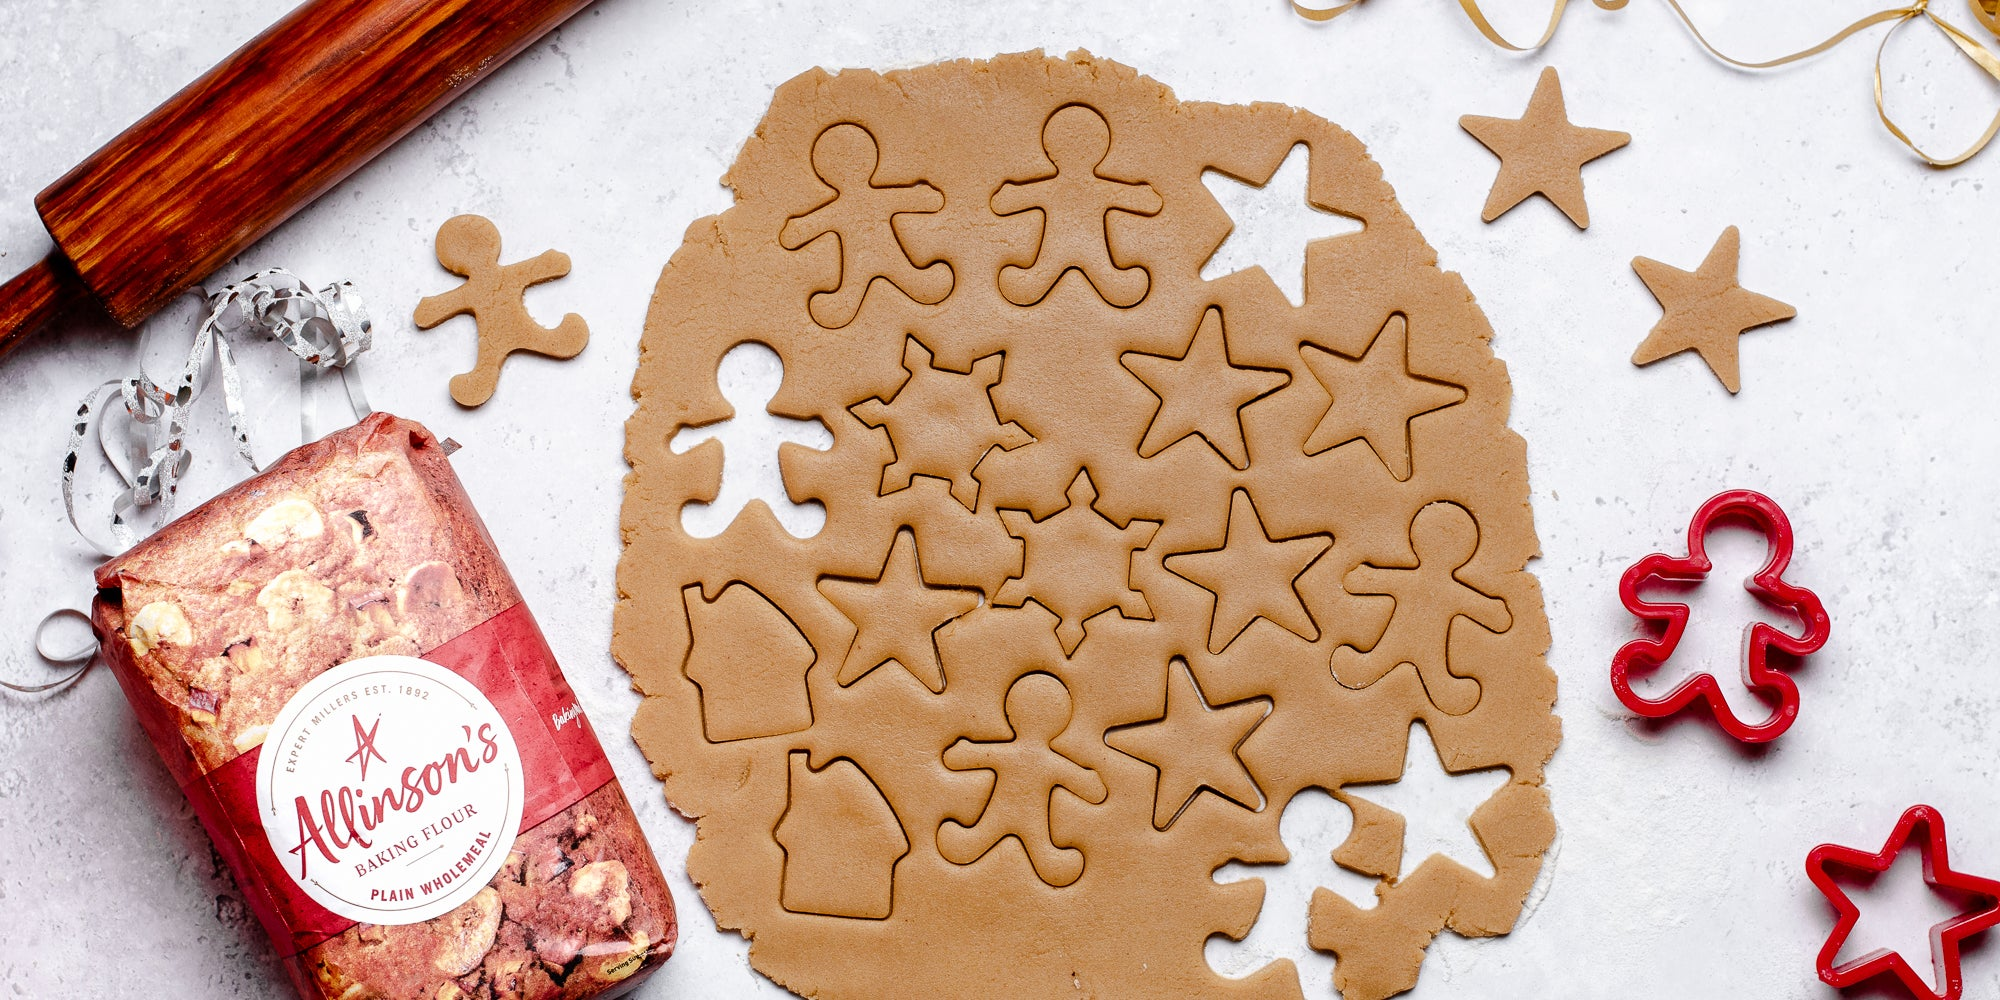 Top view of rolled out Gingerbread Dough, with shapes cut out of it, next to cookie cutters and a bag of Allinson's plain flour